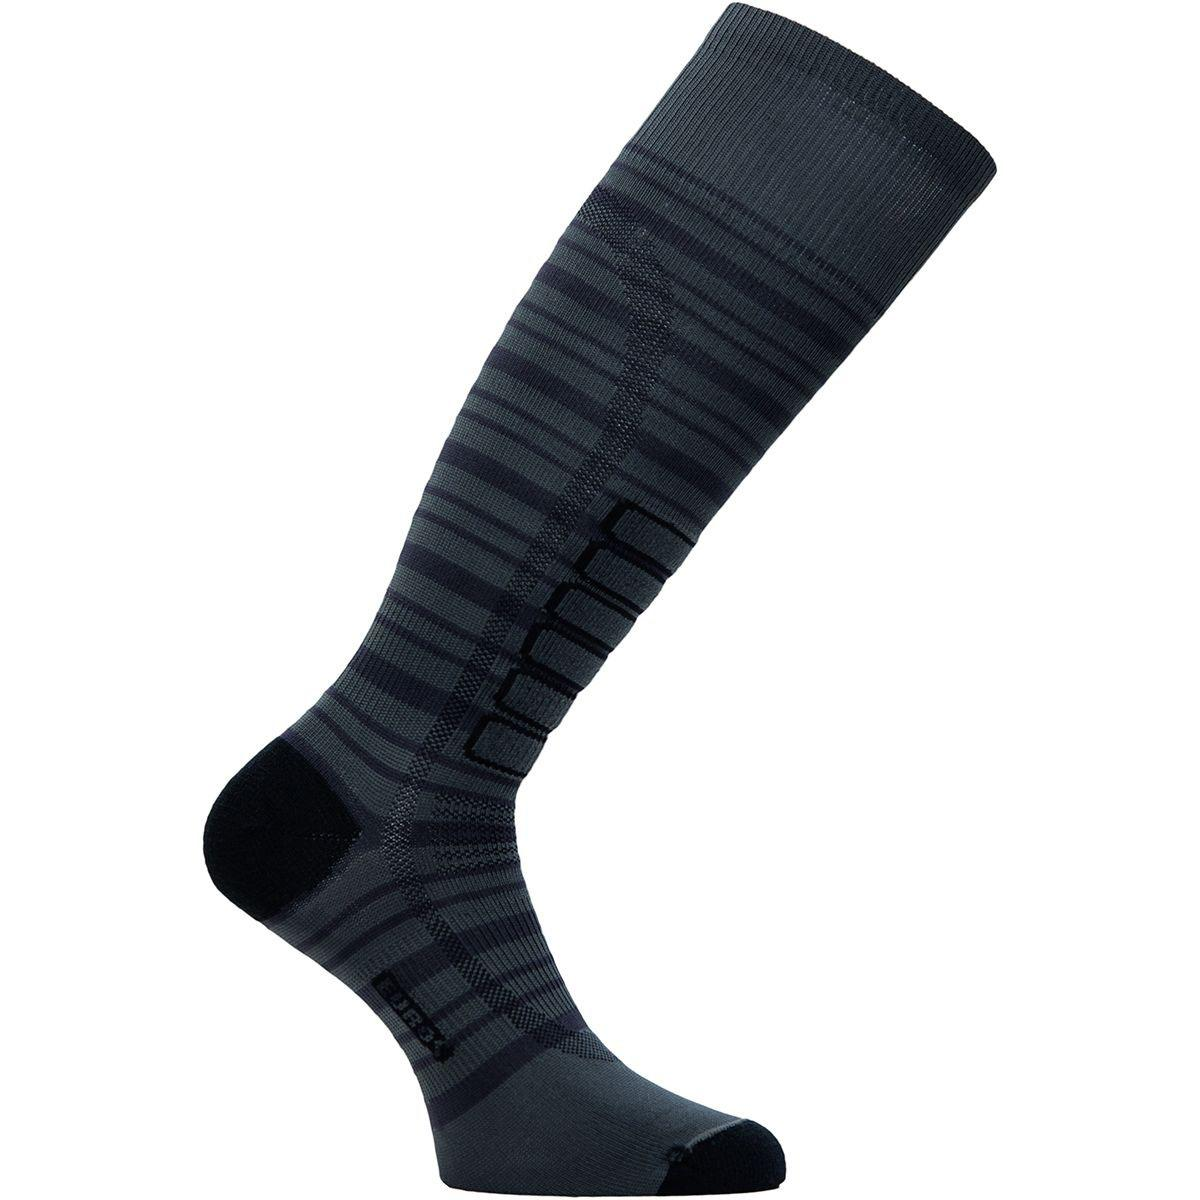 Eurosock Men's Silver Ski Light Sock in Charcoal and Black